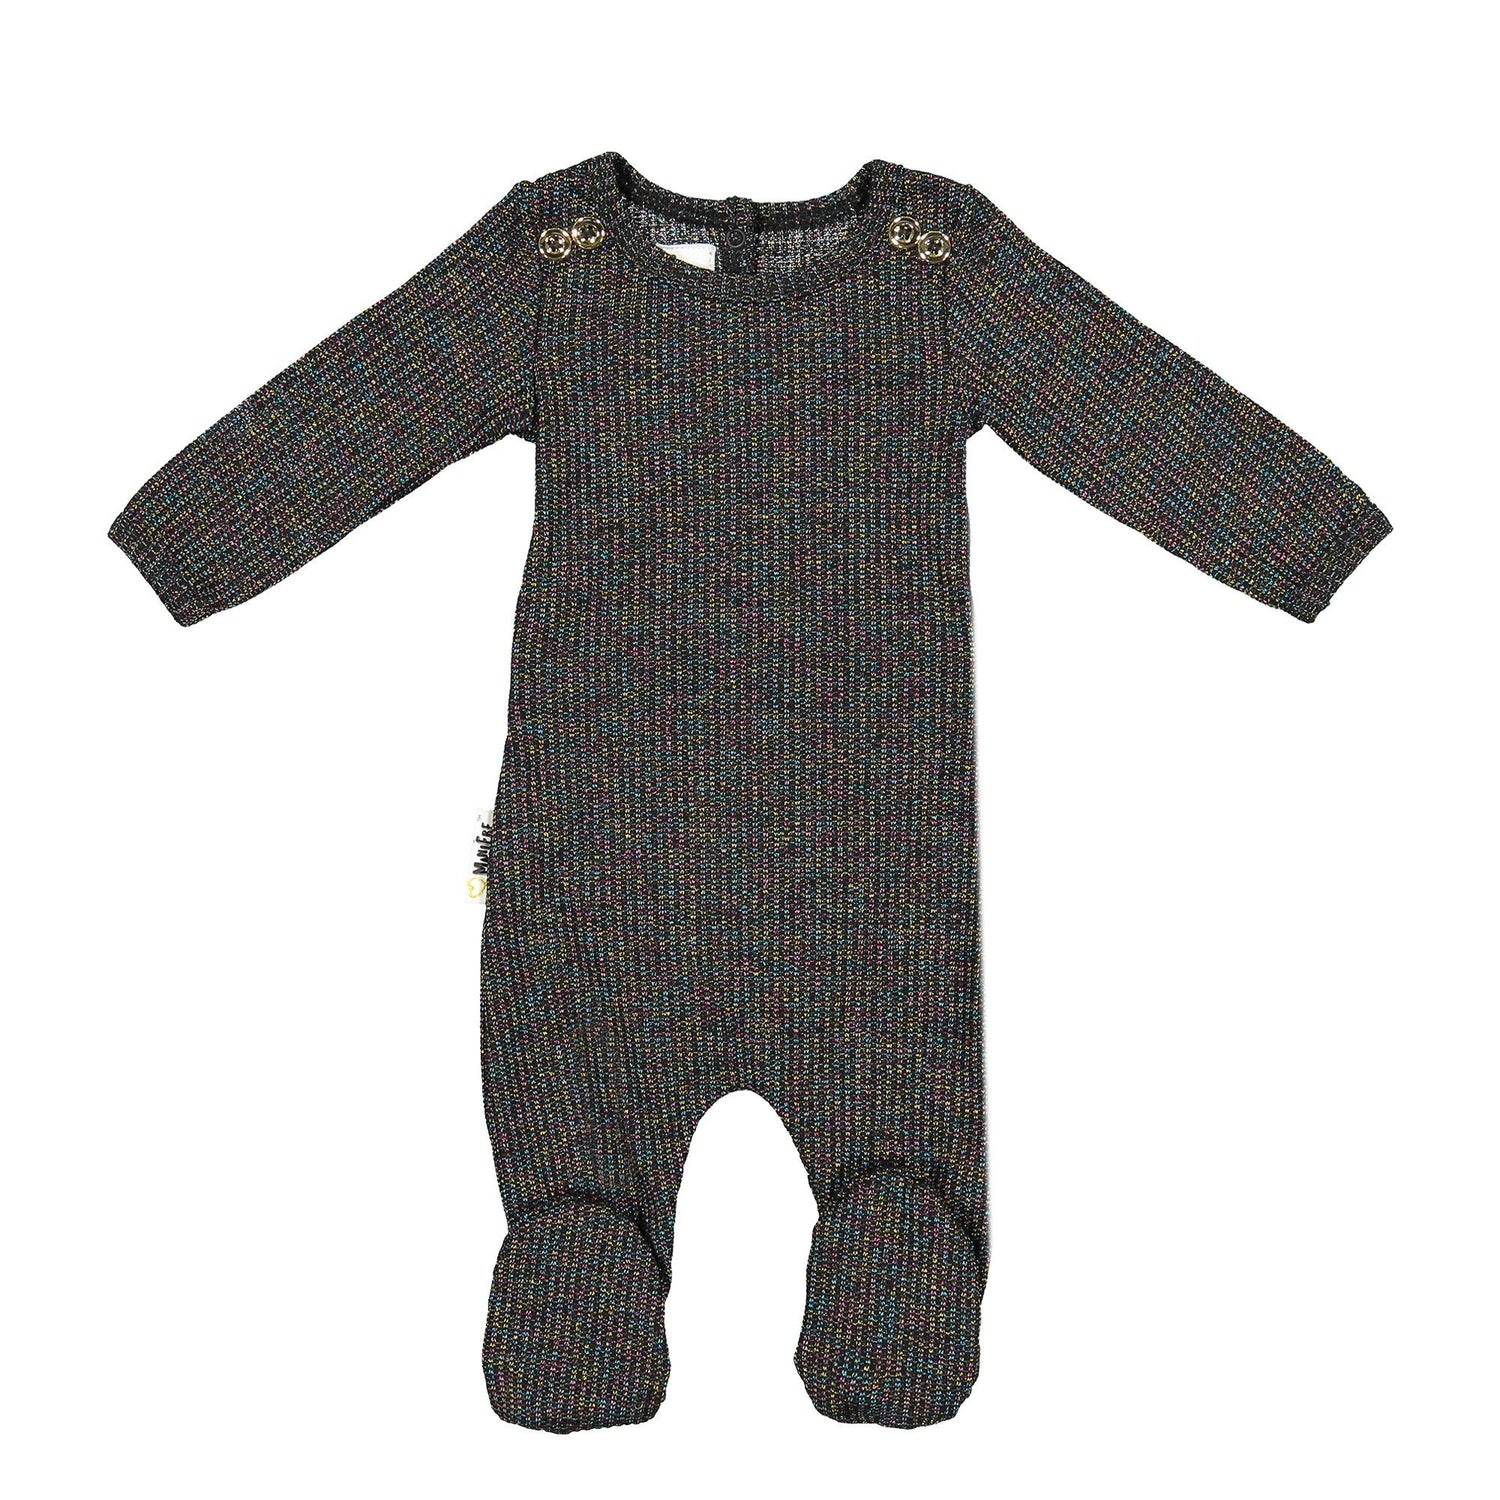 Sparkle Rib Footie Baby Footies Maniere Accessories Black 3 Months